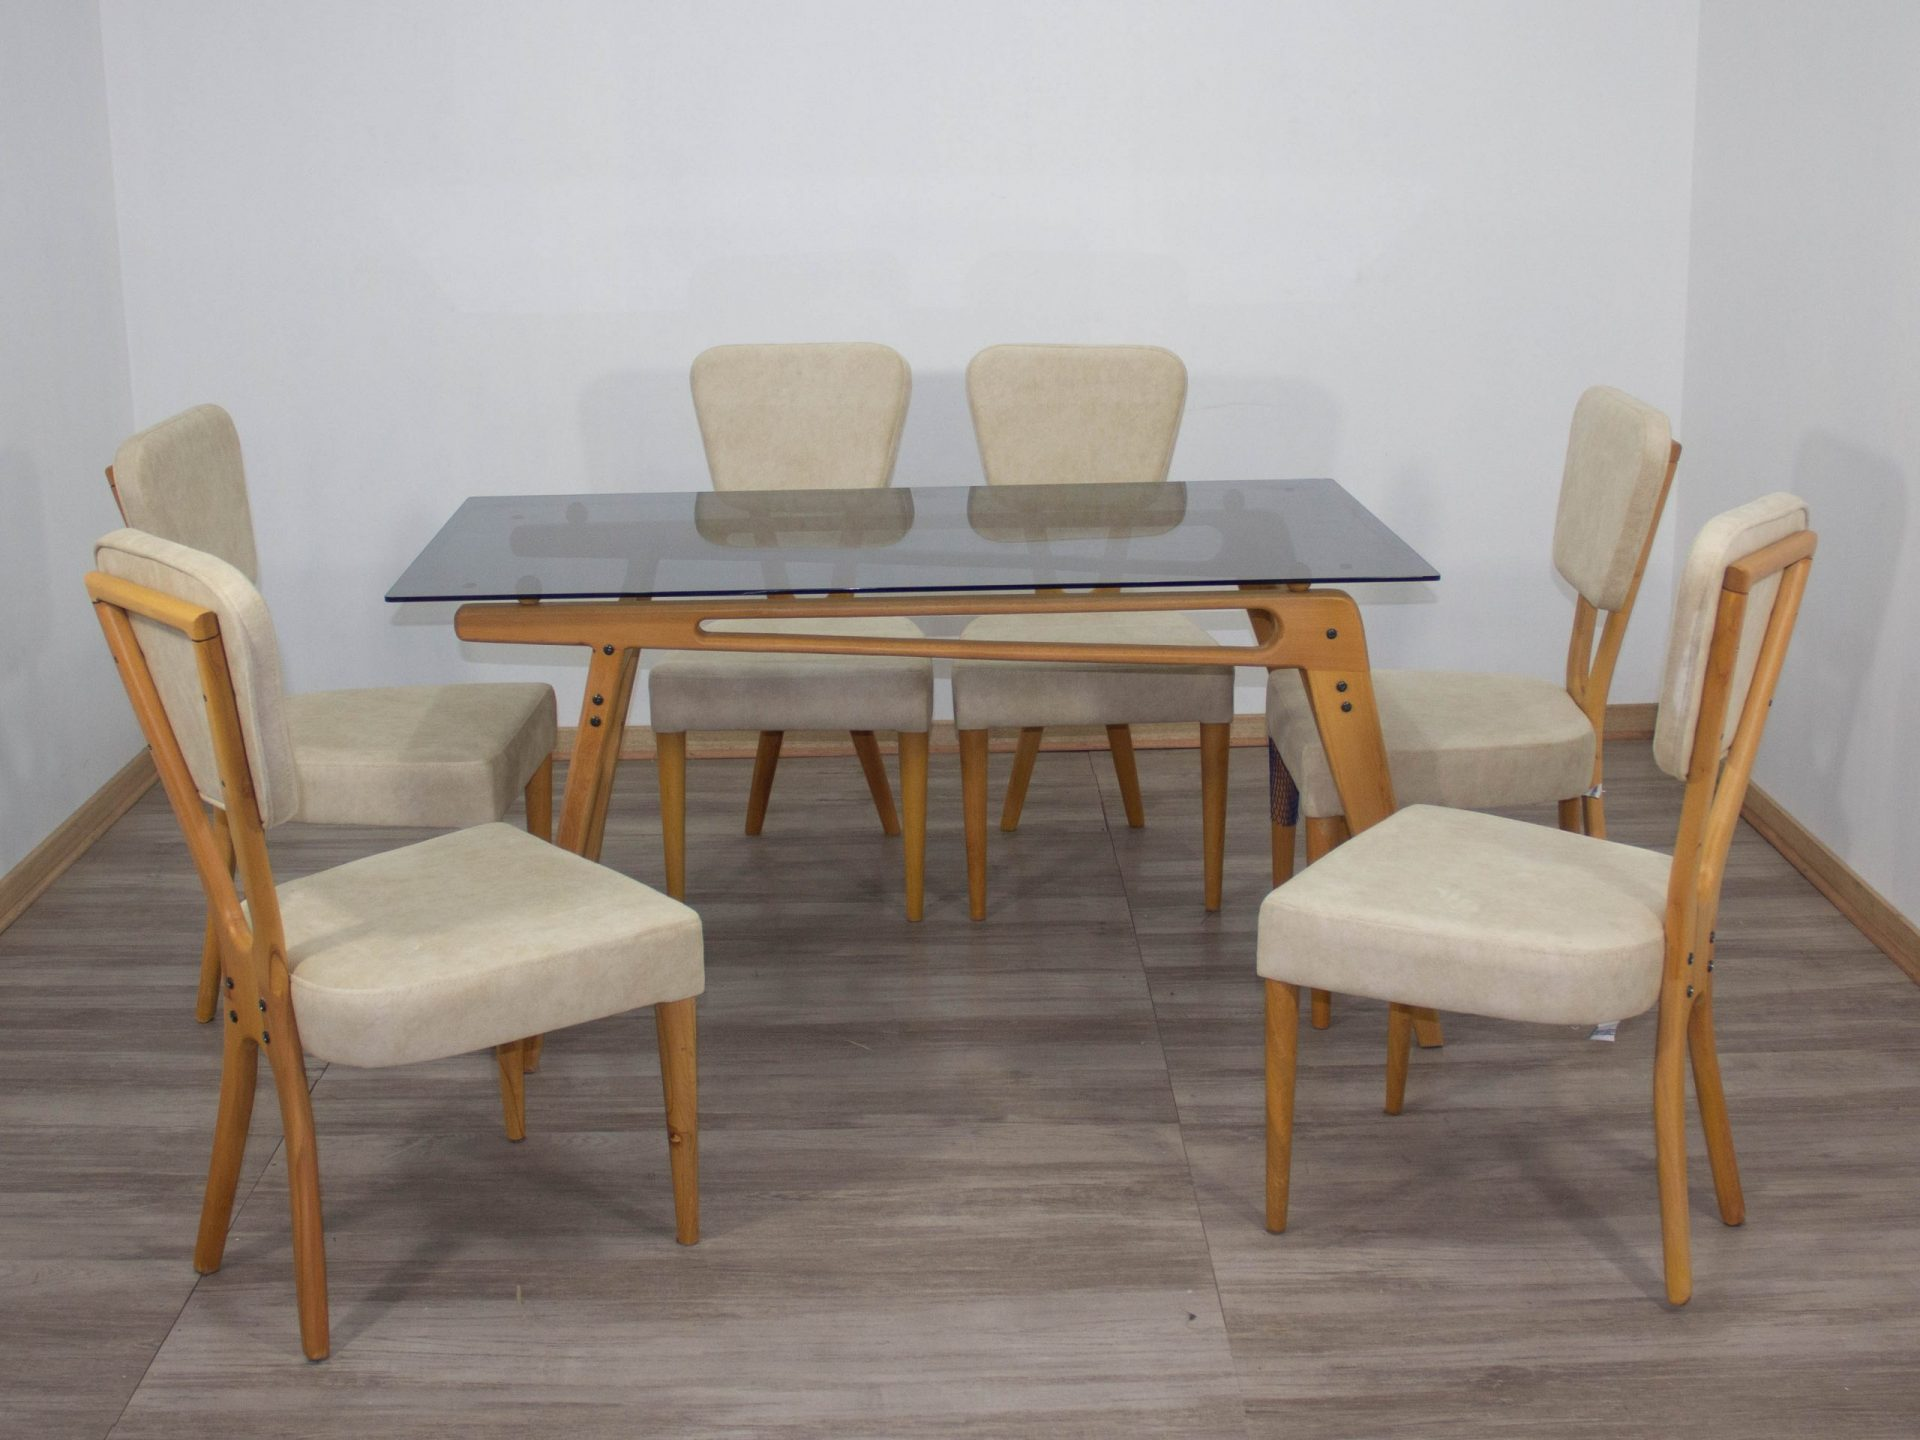 Dining-Set-EF-including-chairs-scaled-1